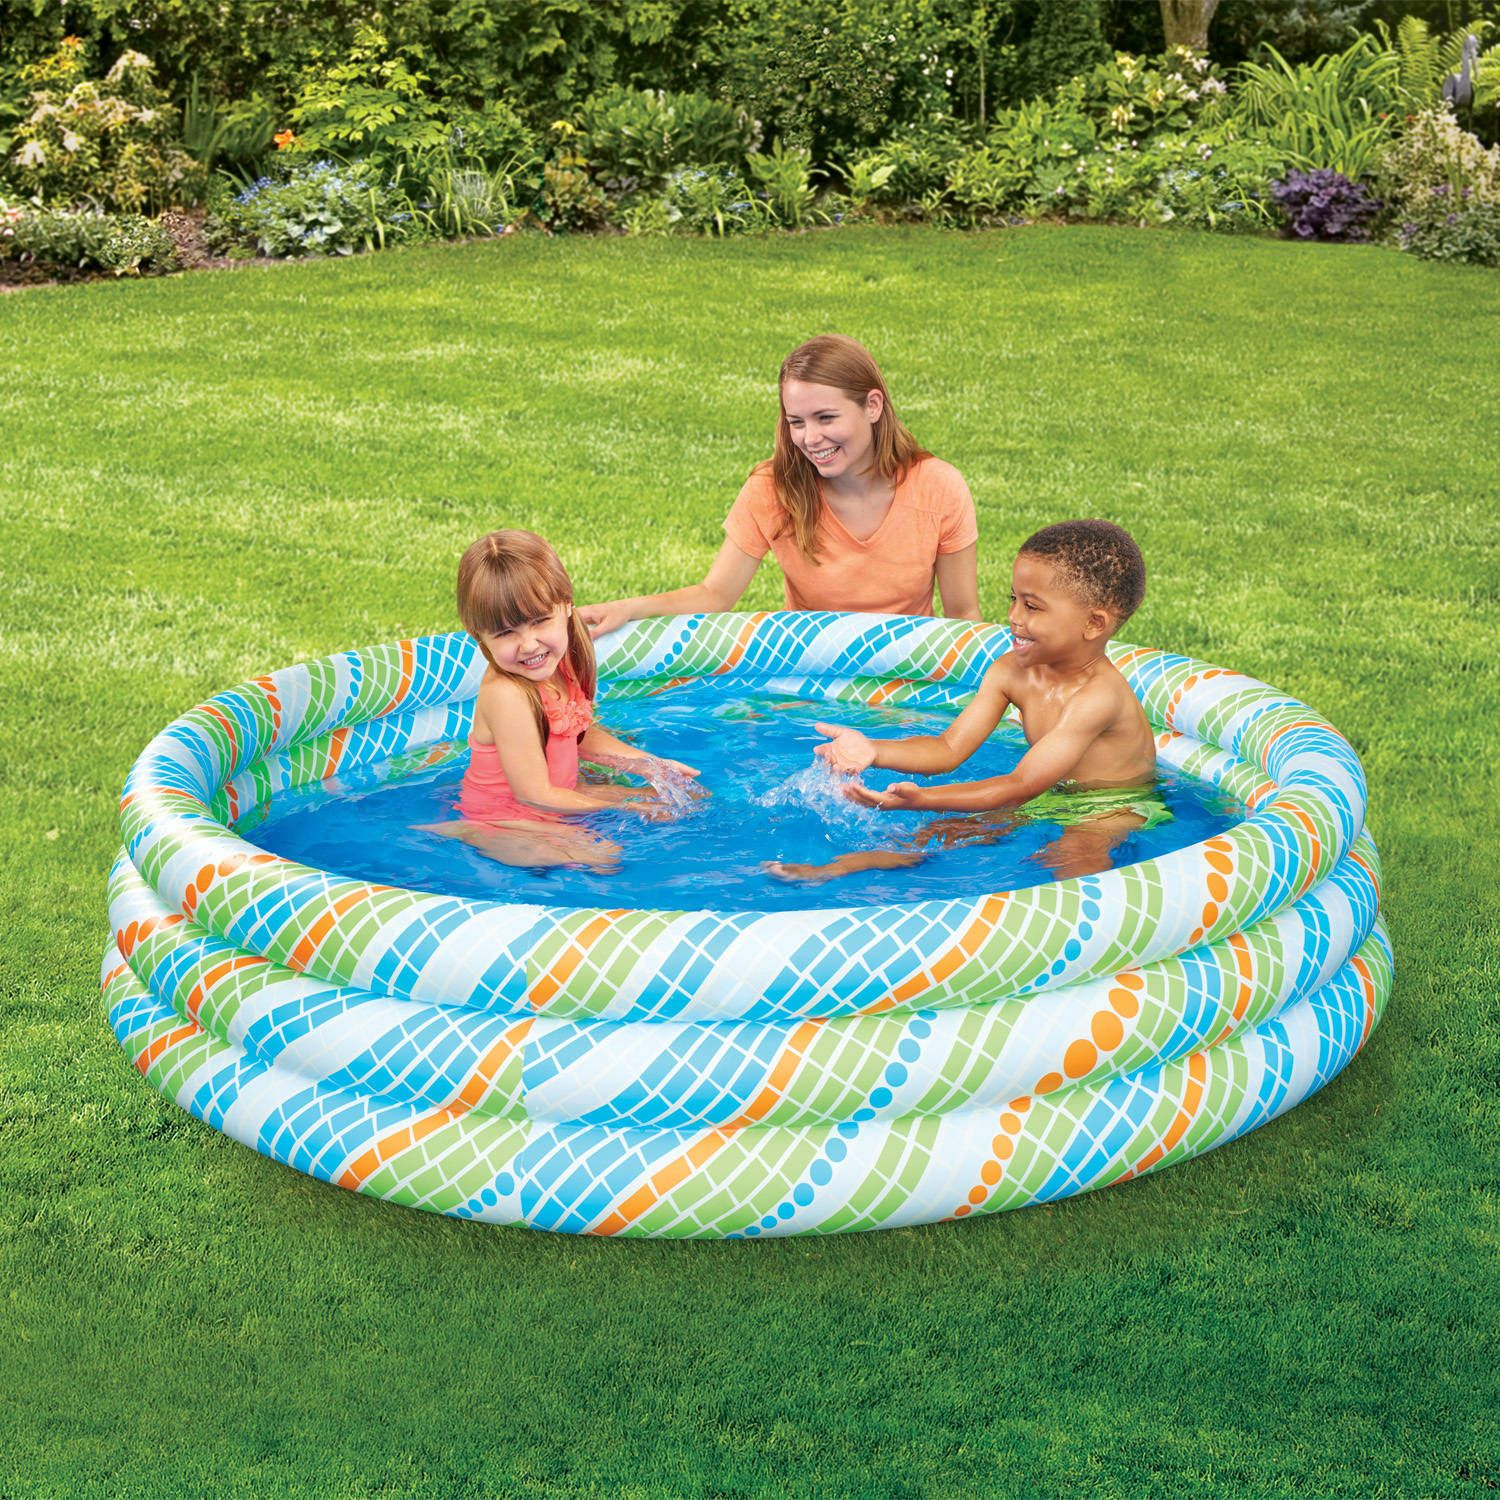 Play Day Deluxe Family Pool Family Pool Inflatable Pool Kiddie